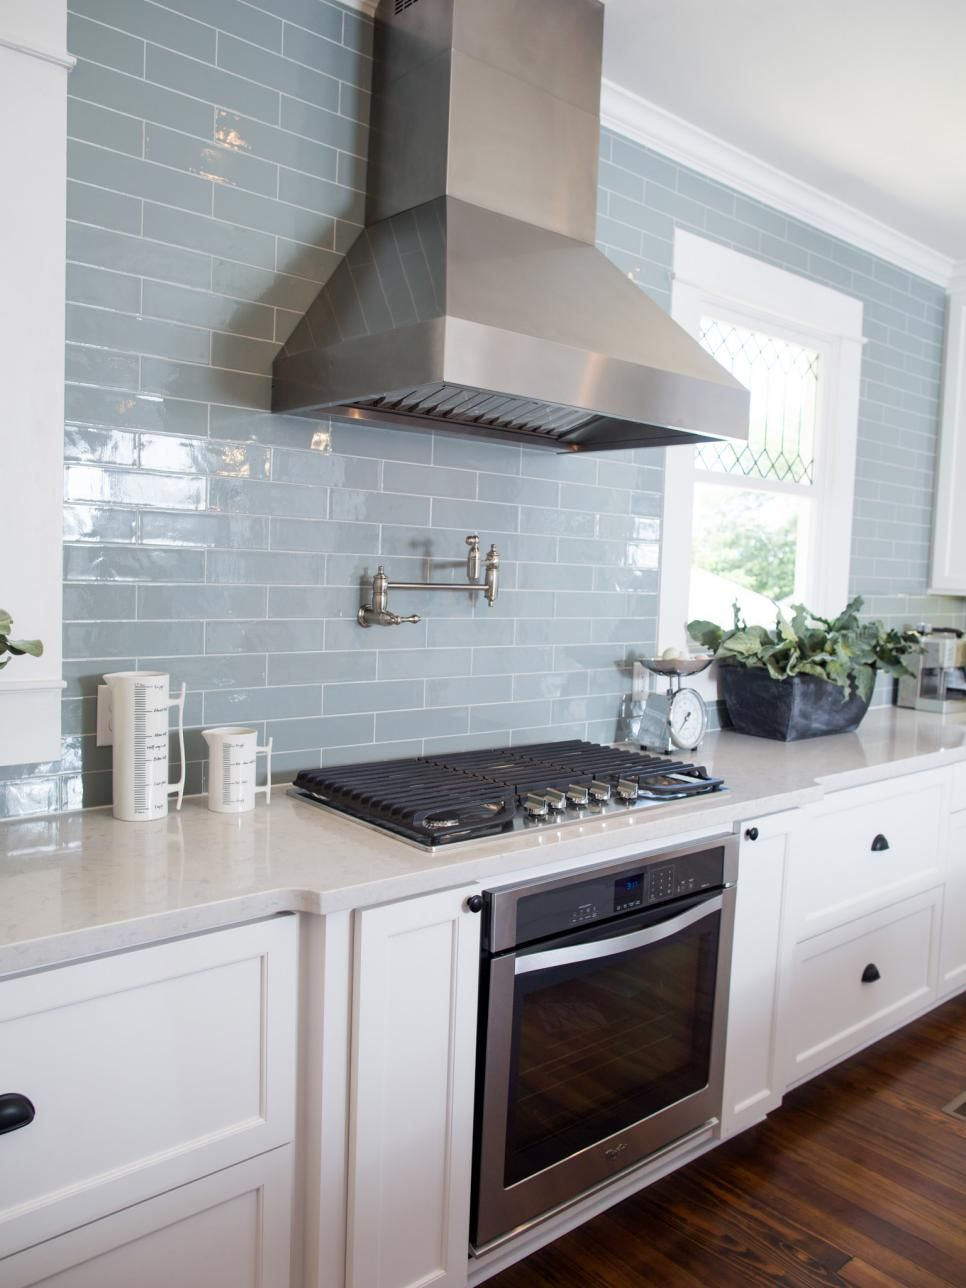 subway tile for kitchen mobile kitchens sale fixer upper texas sized house small town charm fixerupper3 1the other key features in the new are stainless steel appliances vent hood and a backsplash muted blue favorite color of homeowner